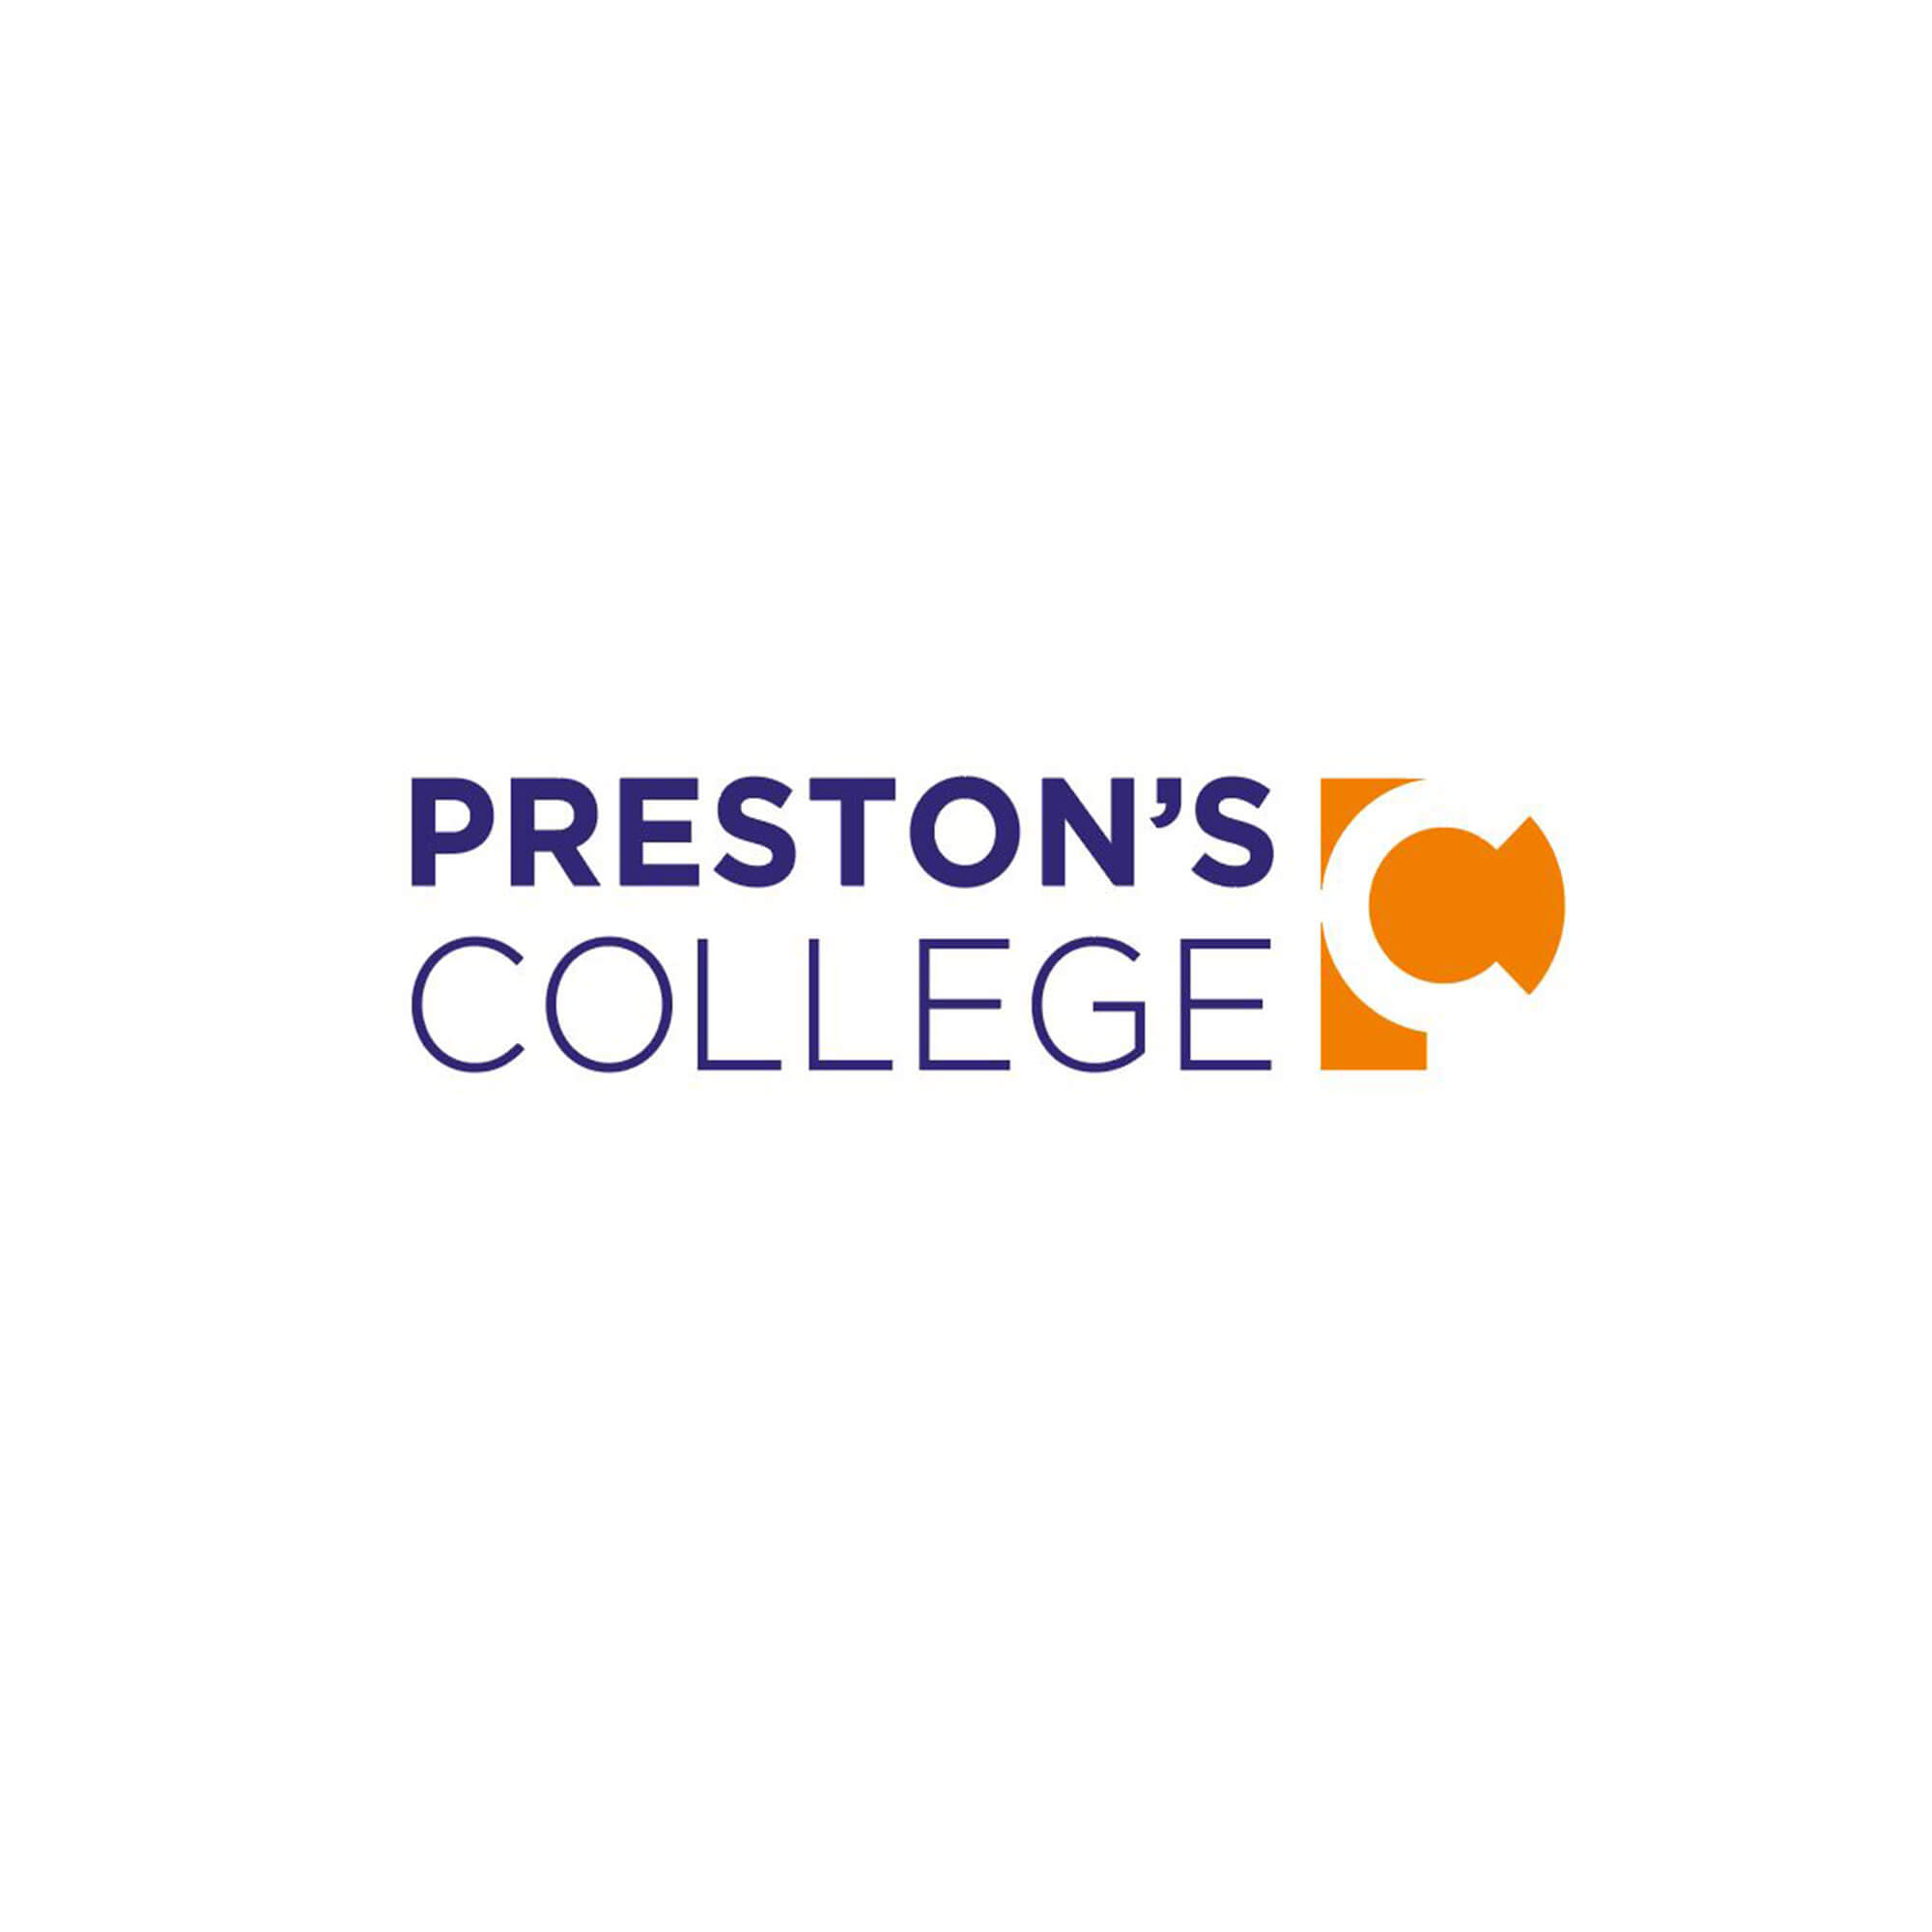 Prestons College logo - purple font and orange circle